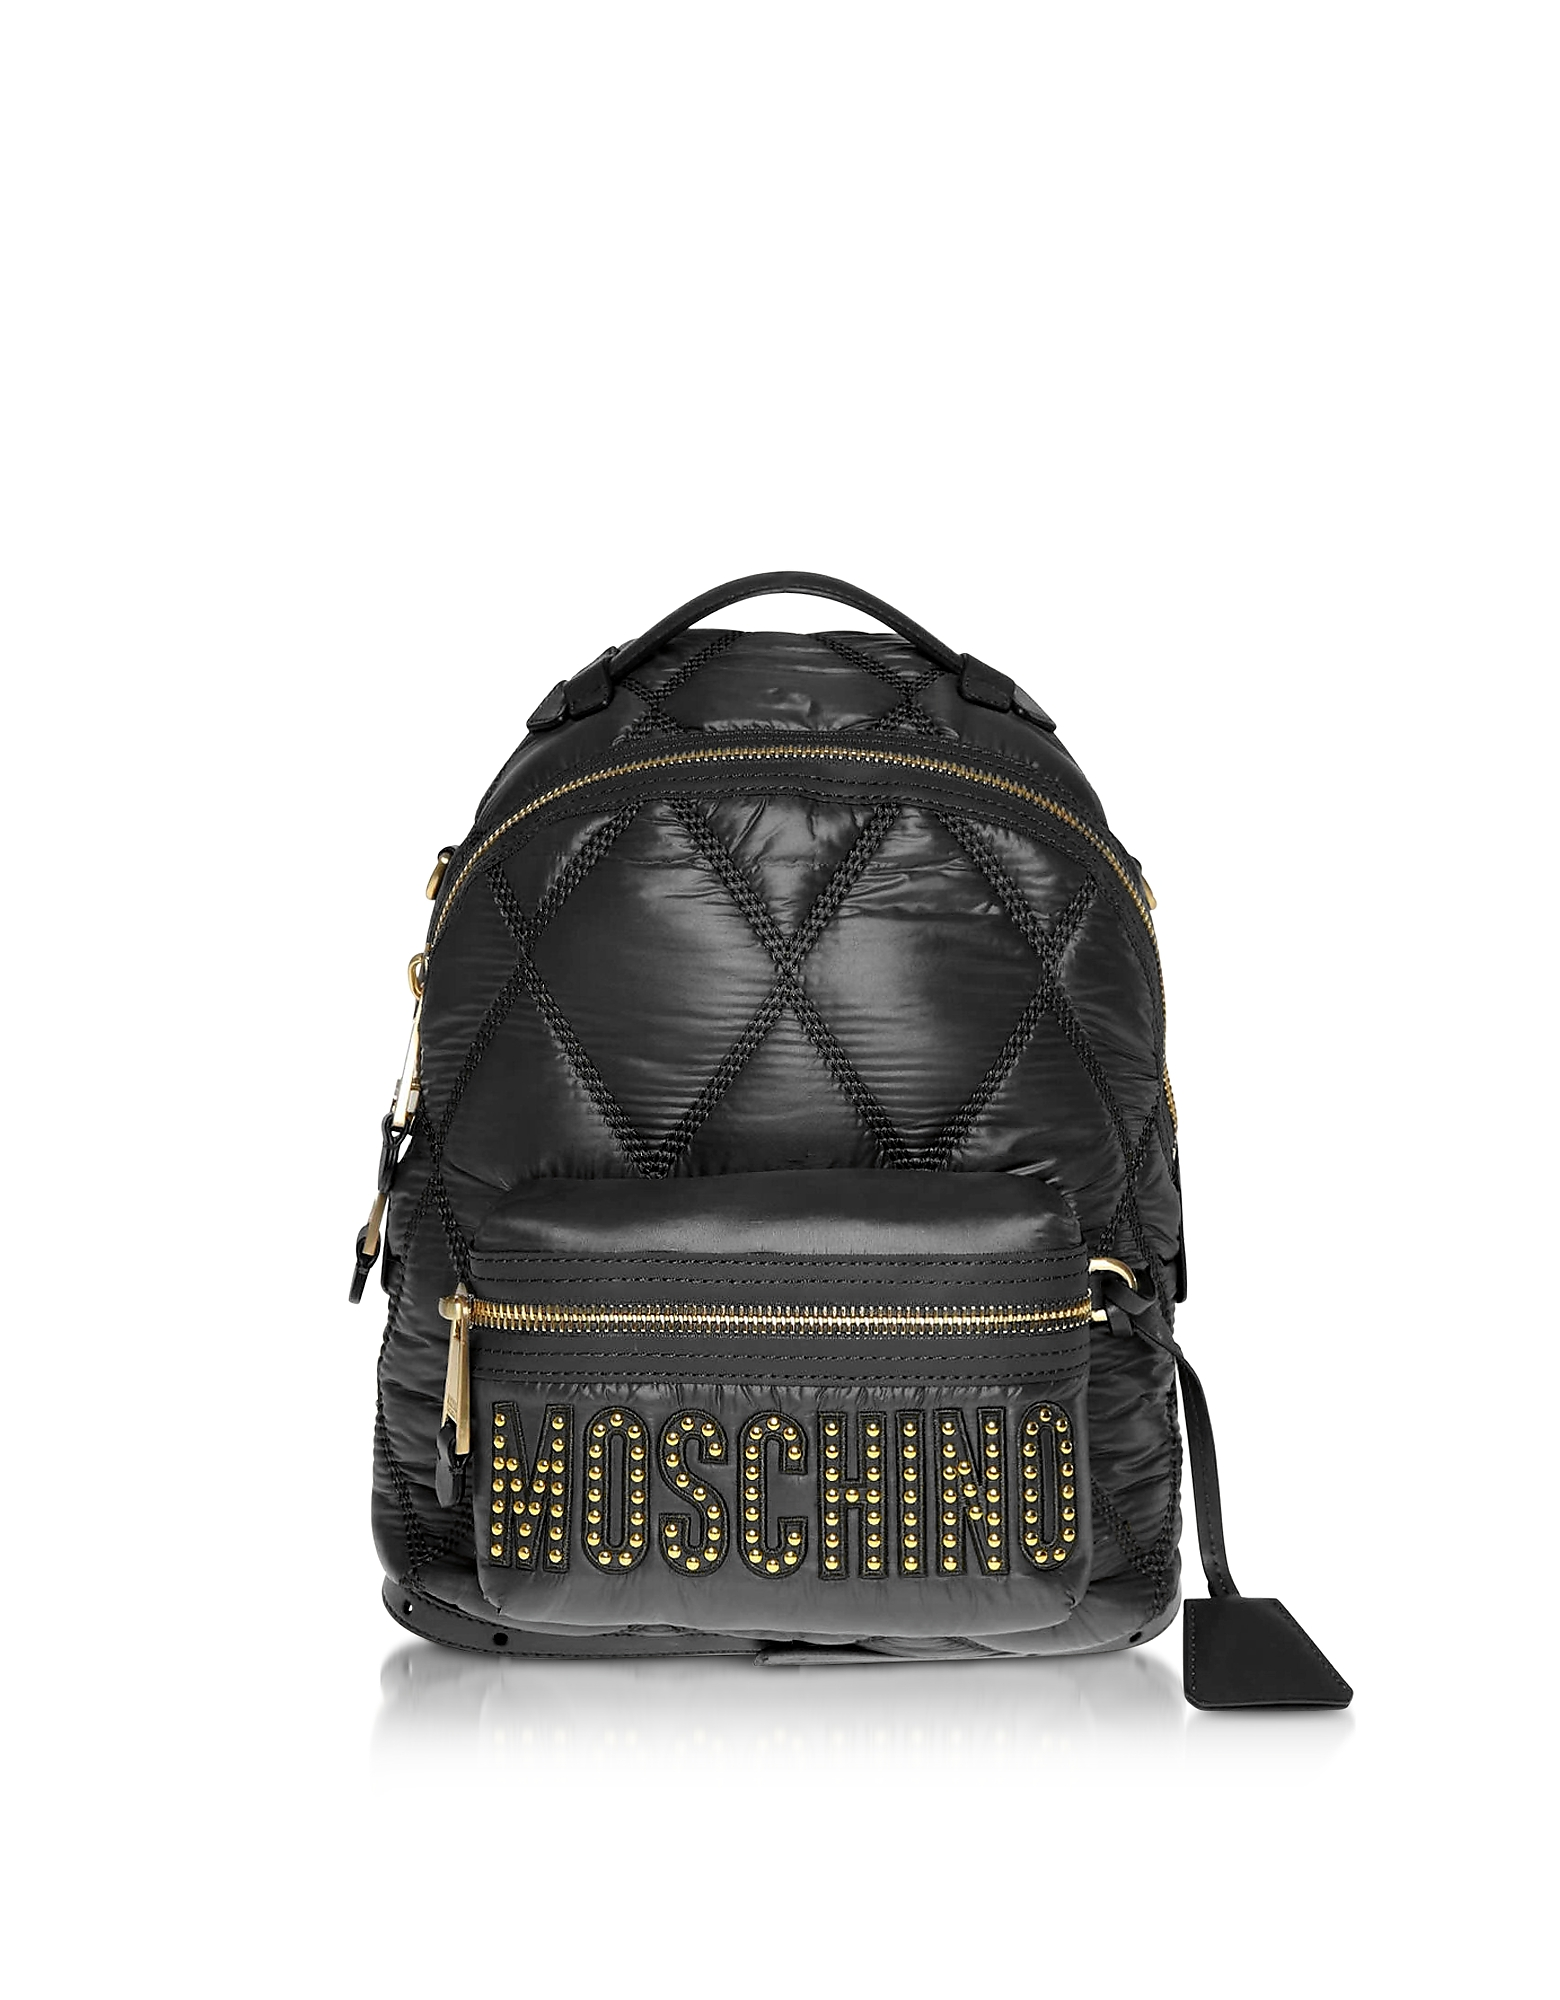 UPC 820771802654 product image for Moschino Designer Handbags, Black Quilted Nylon Signature Backpack w/Gold Studs | upcitemdb.com